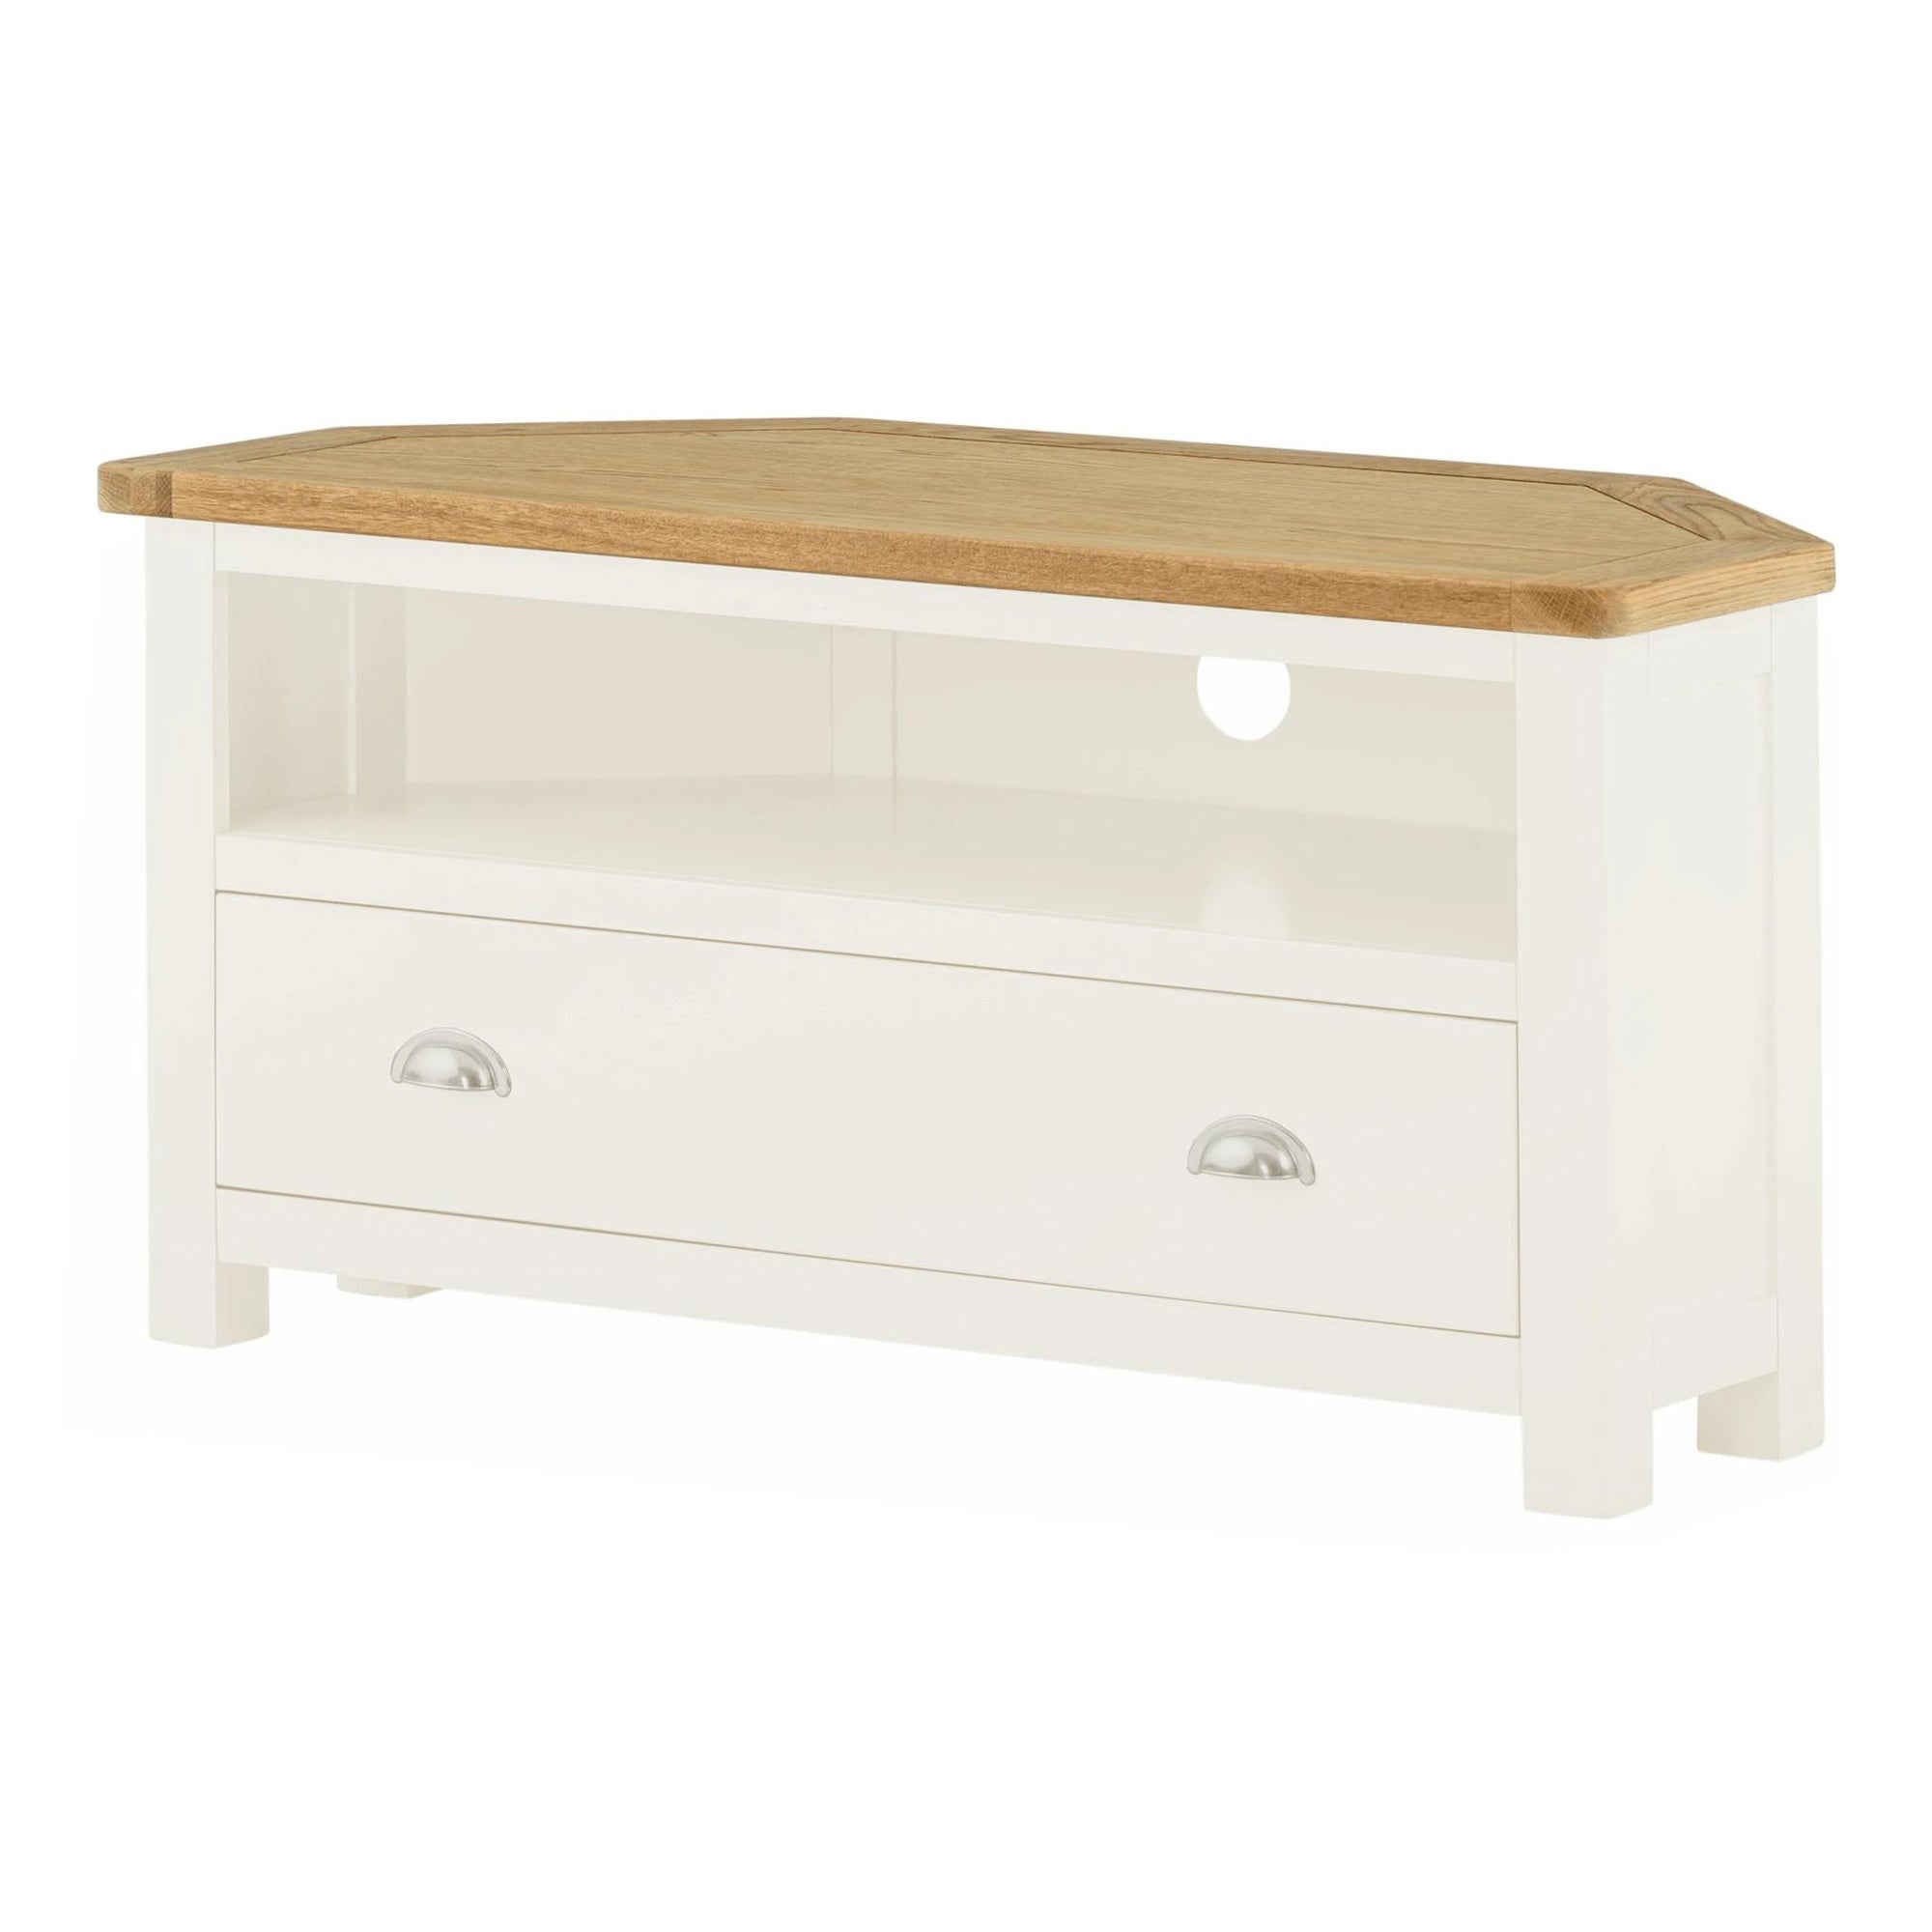 The Padstow White Wooden Corner TV Stand with Drawer from Roseland furniture